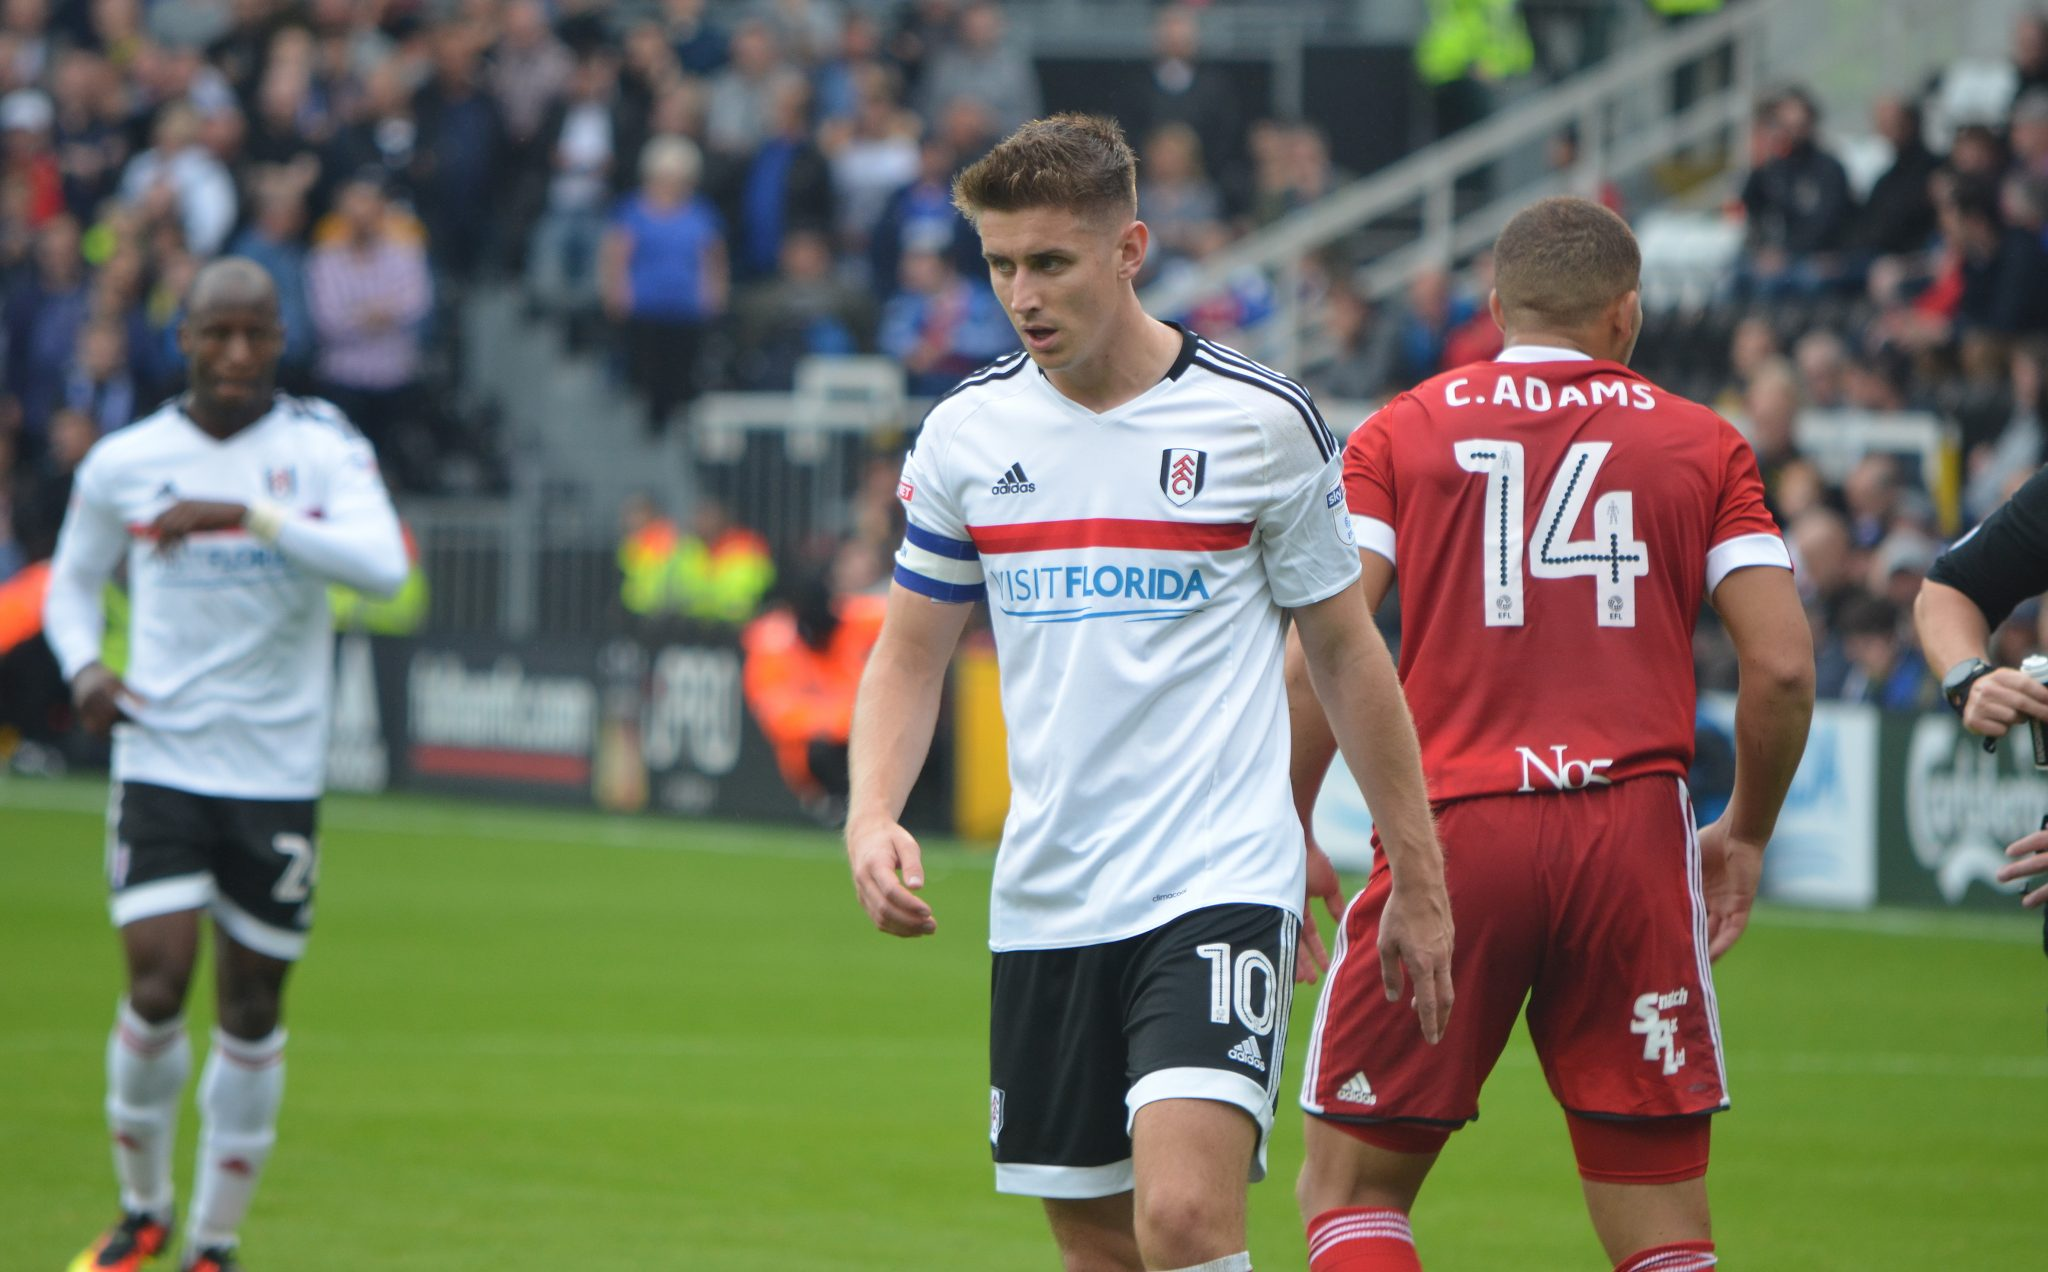 Premier League pain, and Fulham's white knight Cairney